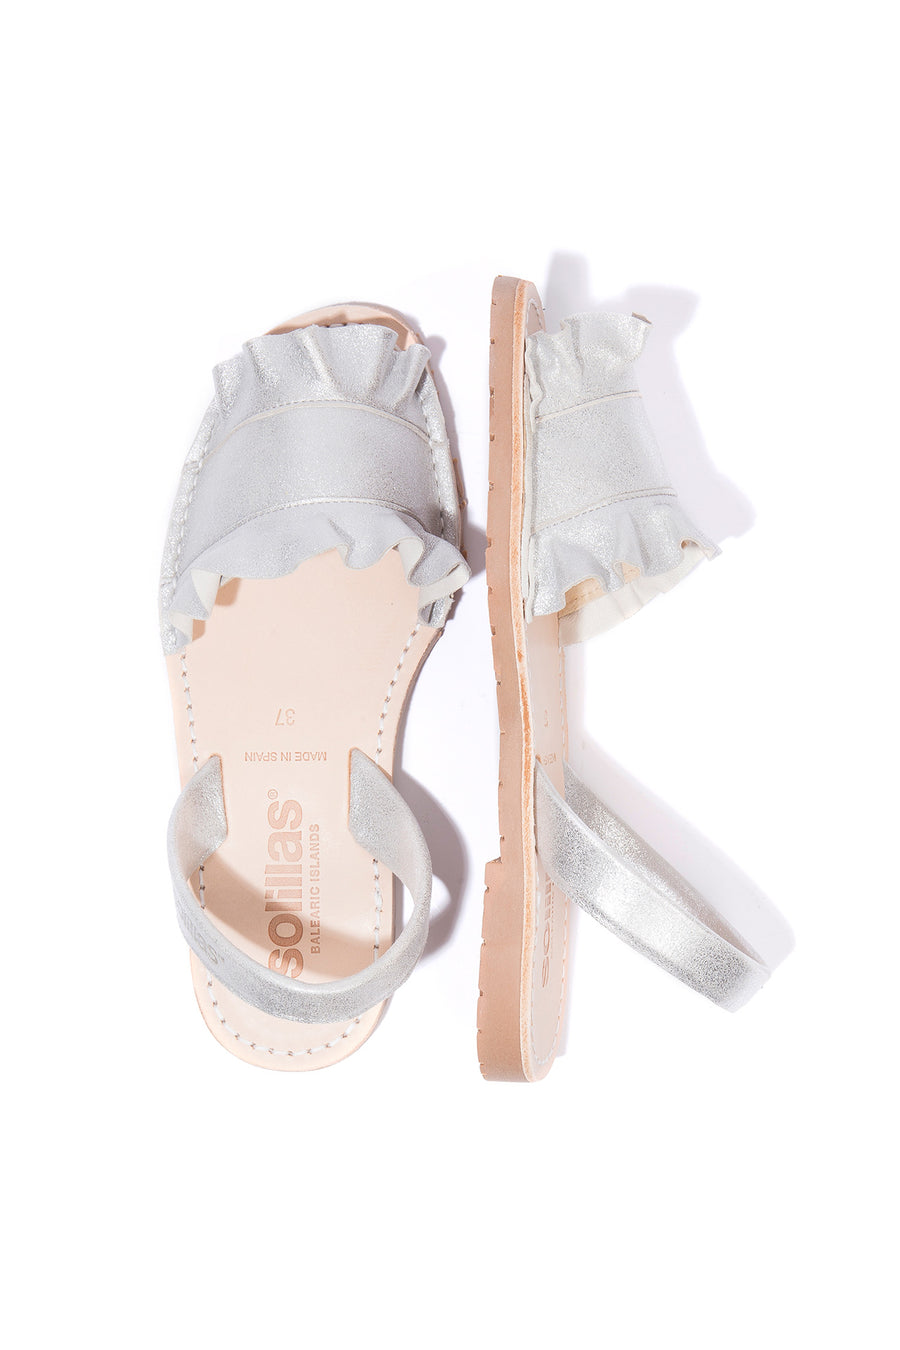 Talaia Silver - Frilled Leather Menorcan sandals